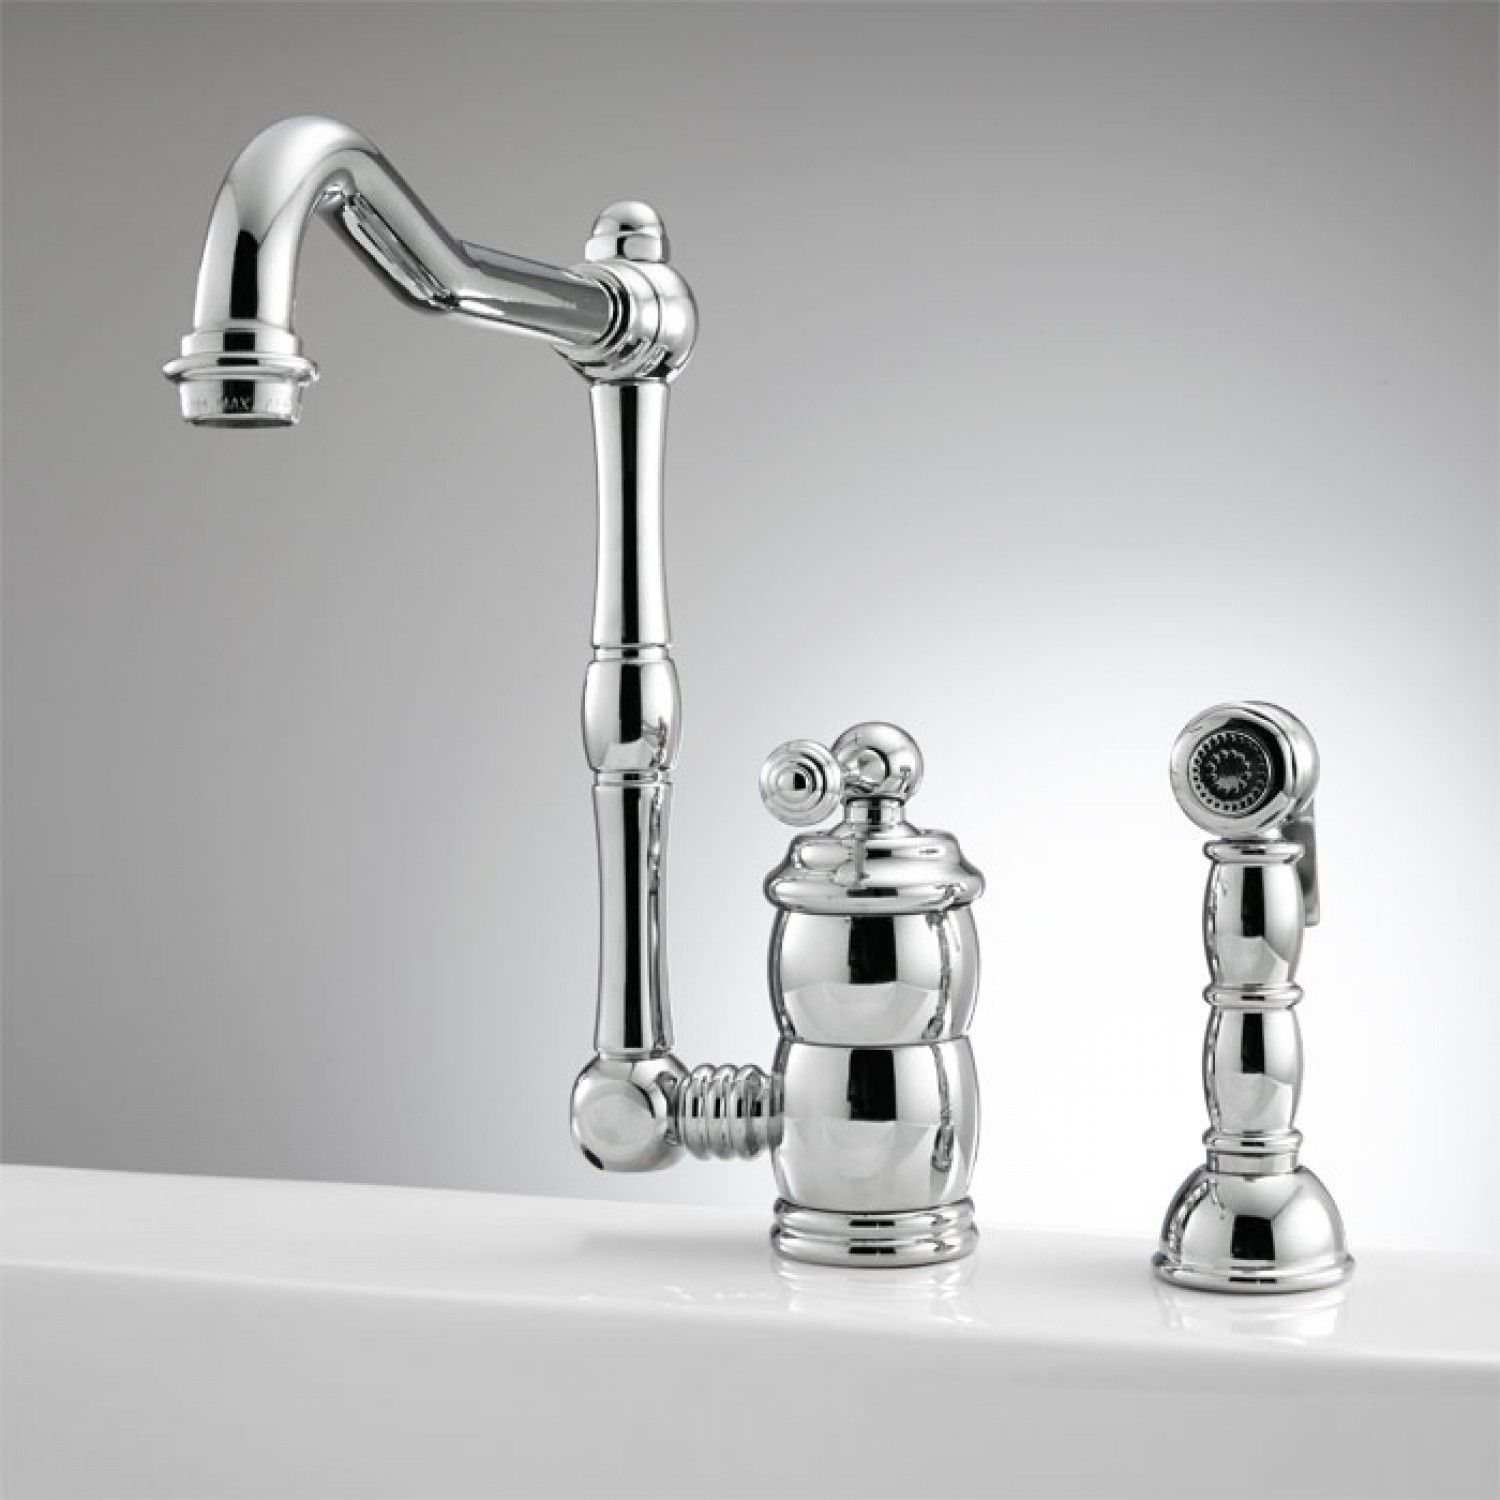 Mulder Single-Hole Kitchen Faucet with Side Spray | Kitchen faucets ...